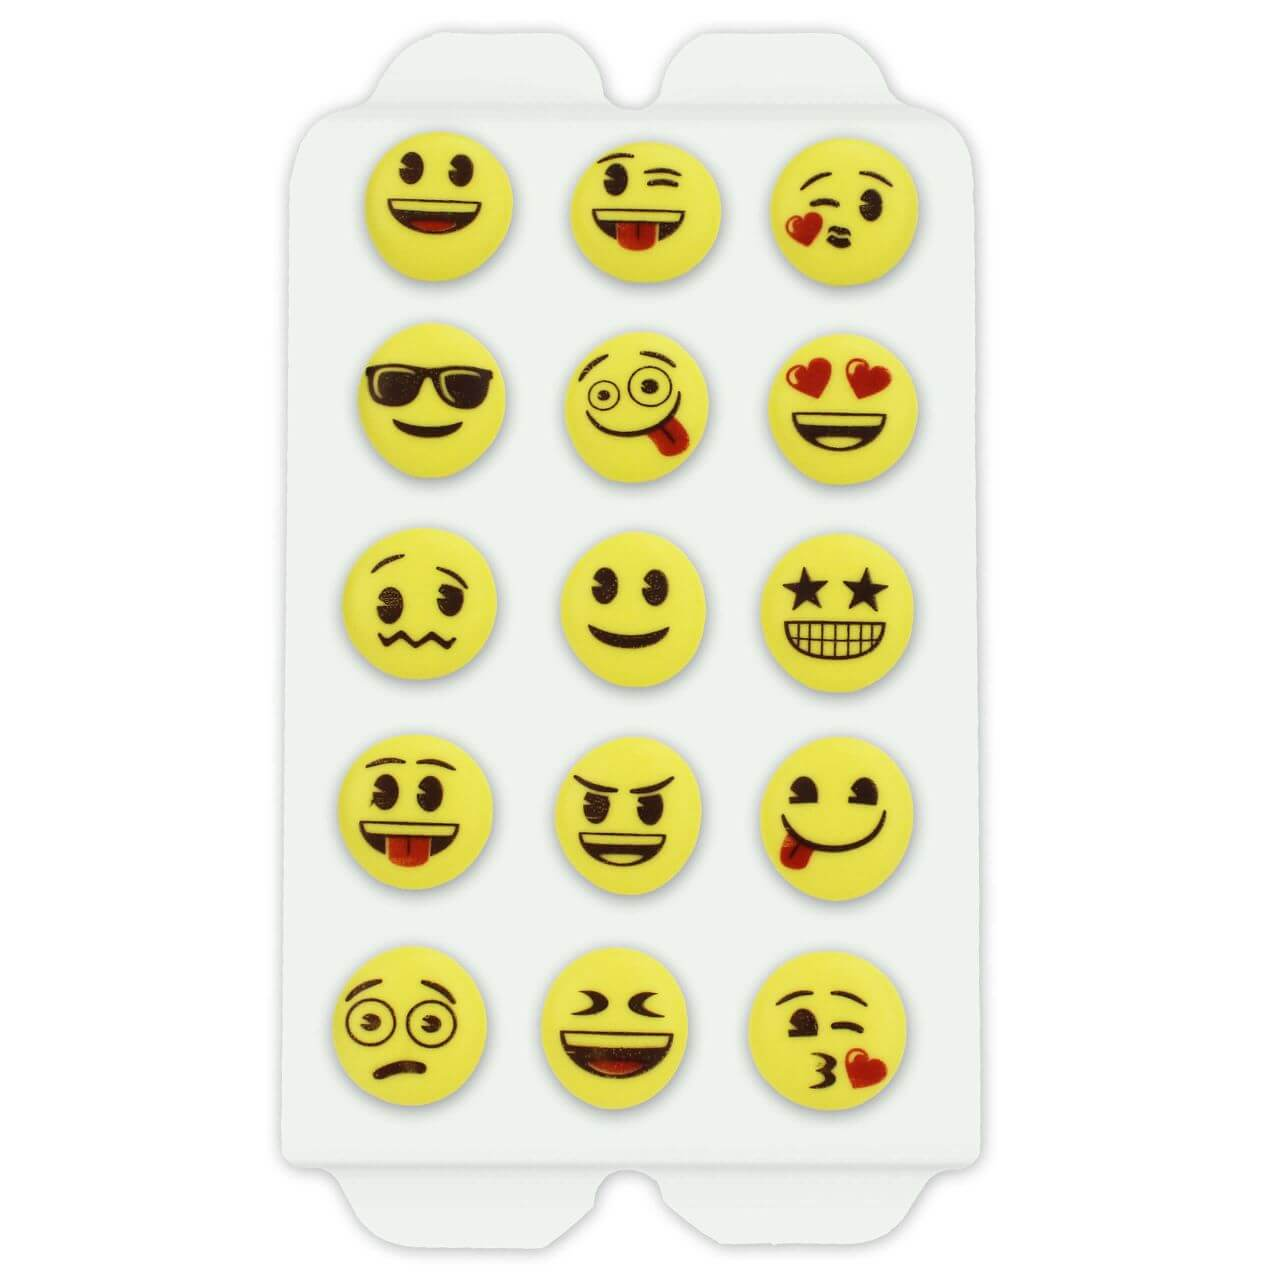 Candy decorations - Emojis, 15 pieces